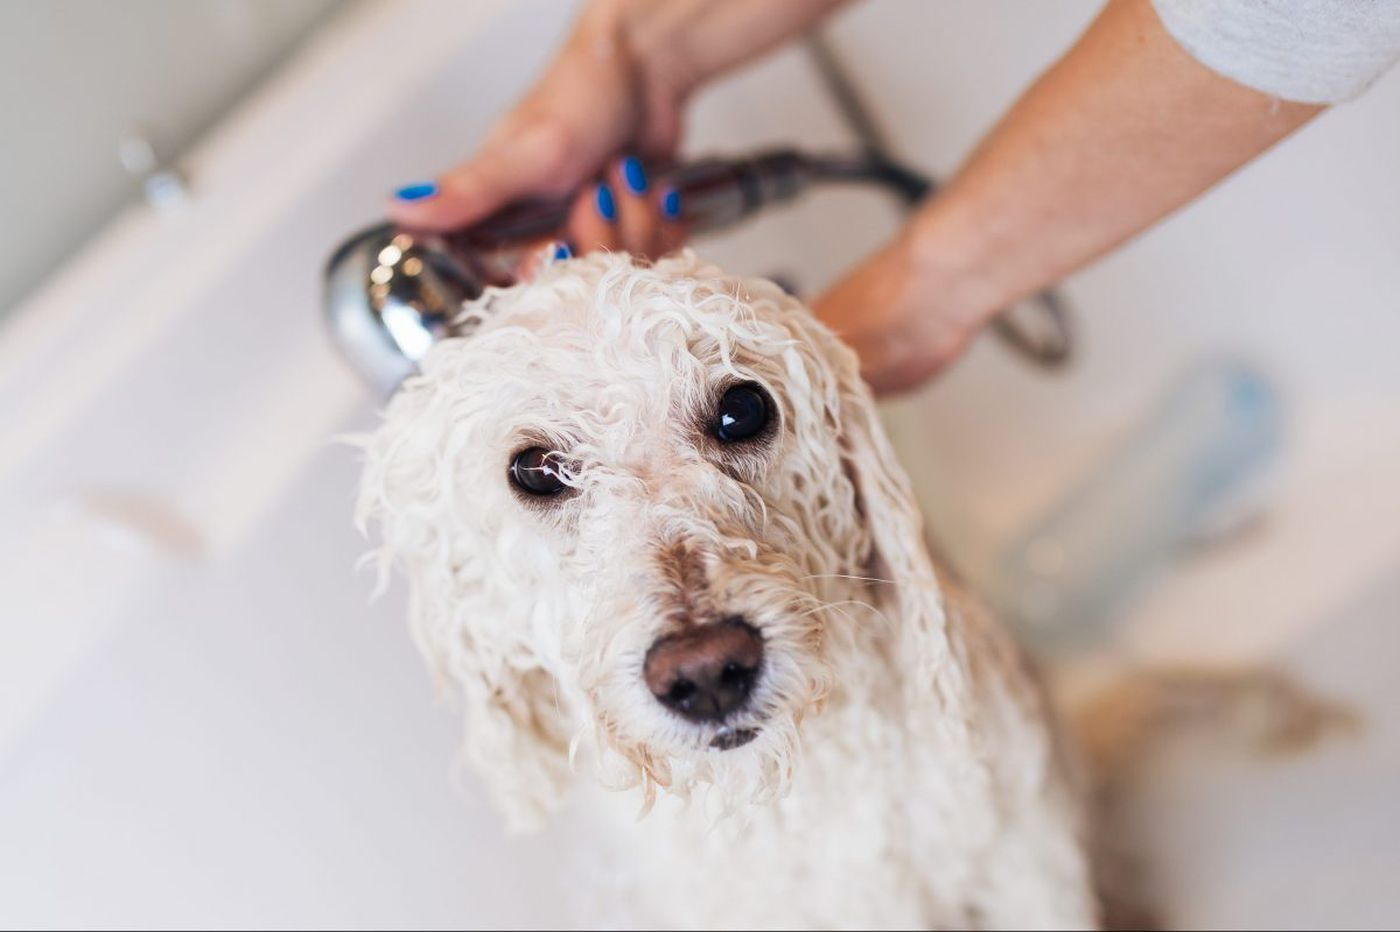 How to find good groomers for aspiring glamour pups